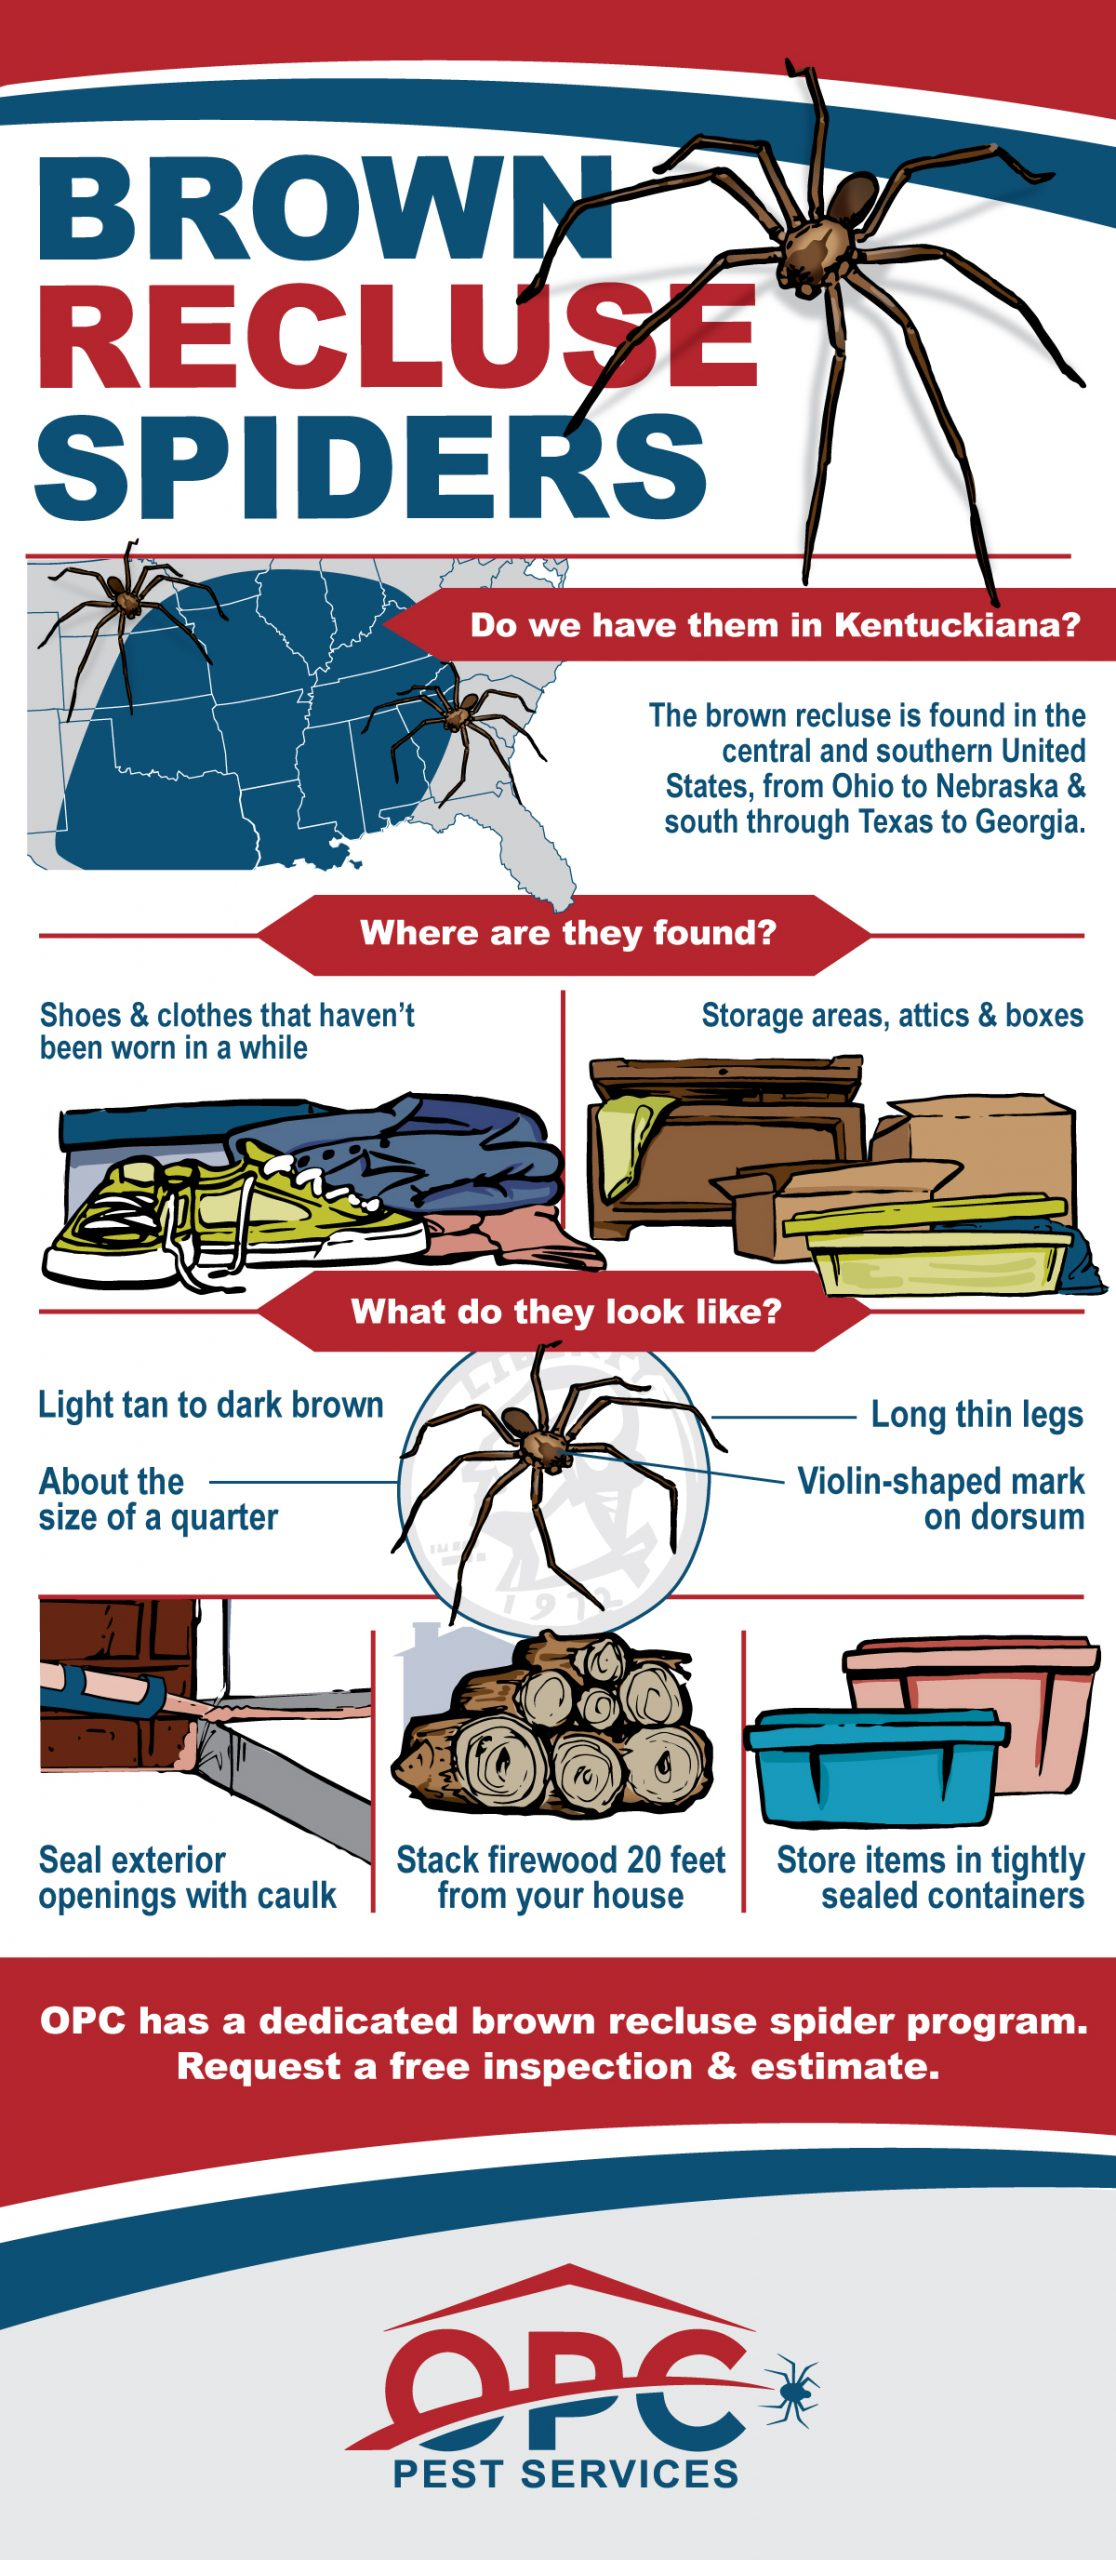 OPC Pest Services - Brown Recluse Spiders Infographic